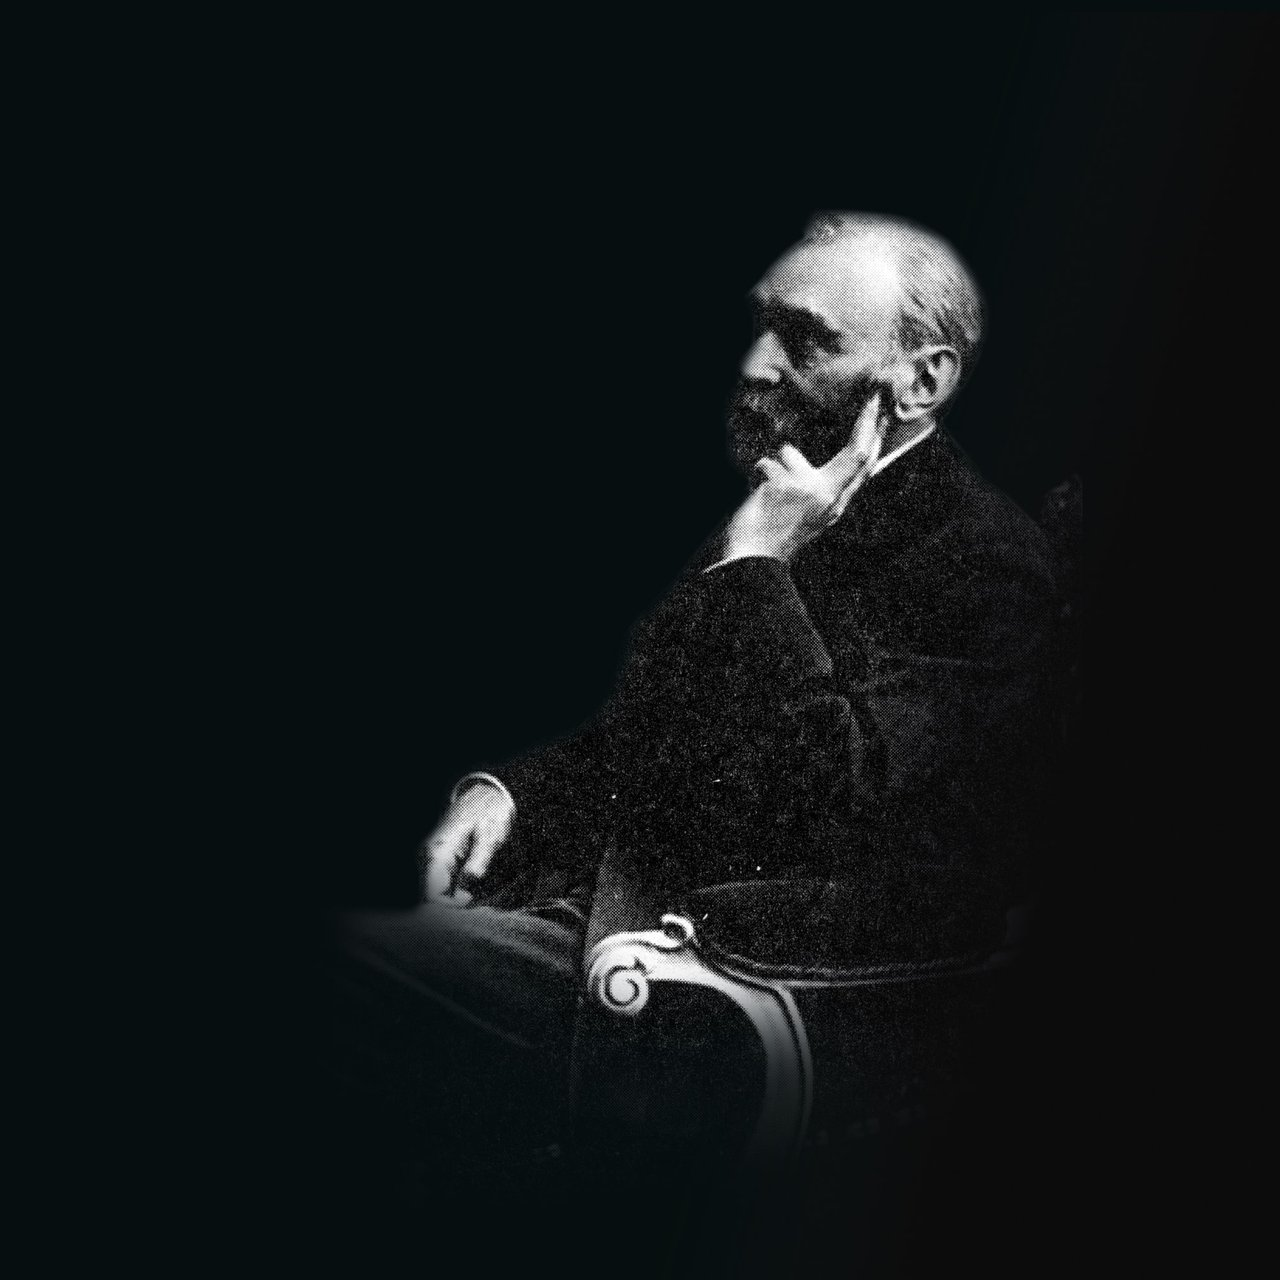 A black and white picture of Alfred Nobel